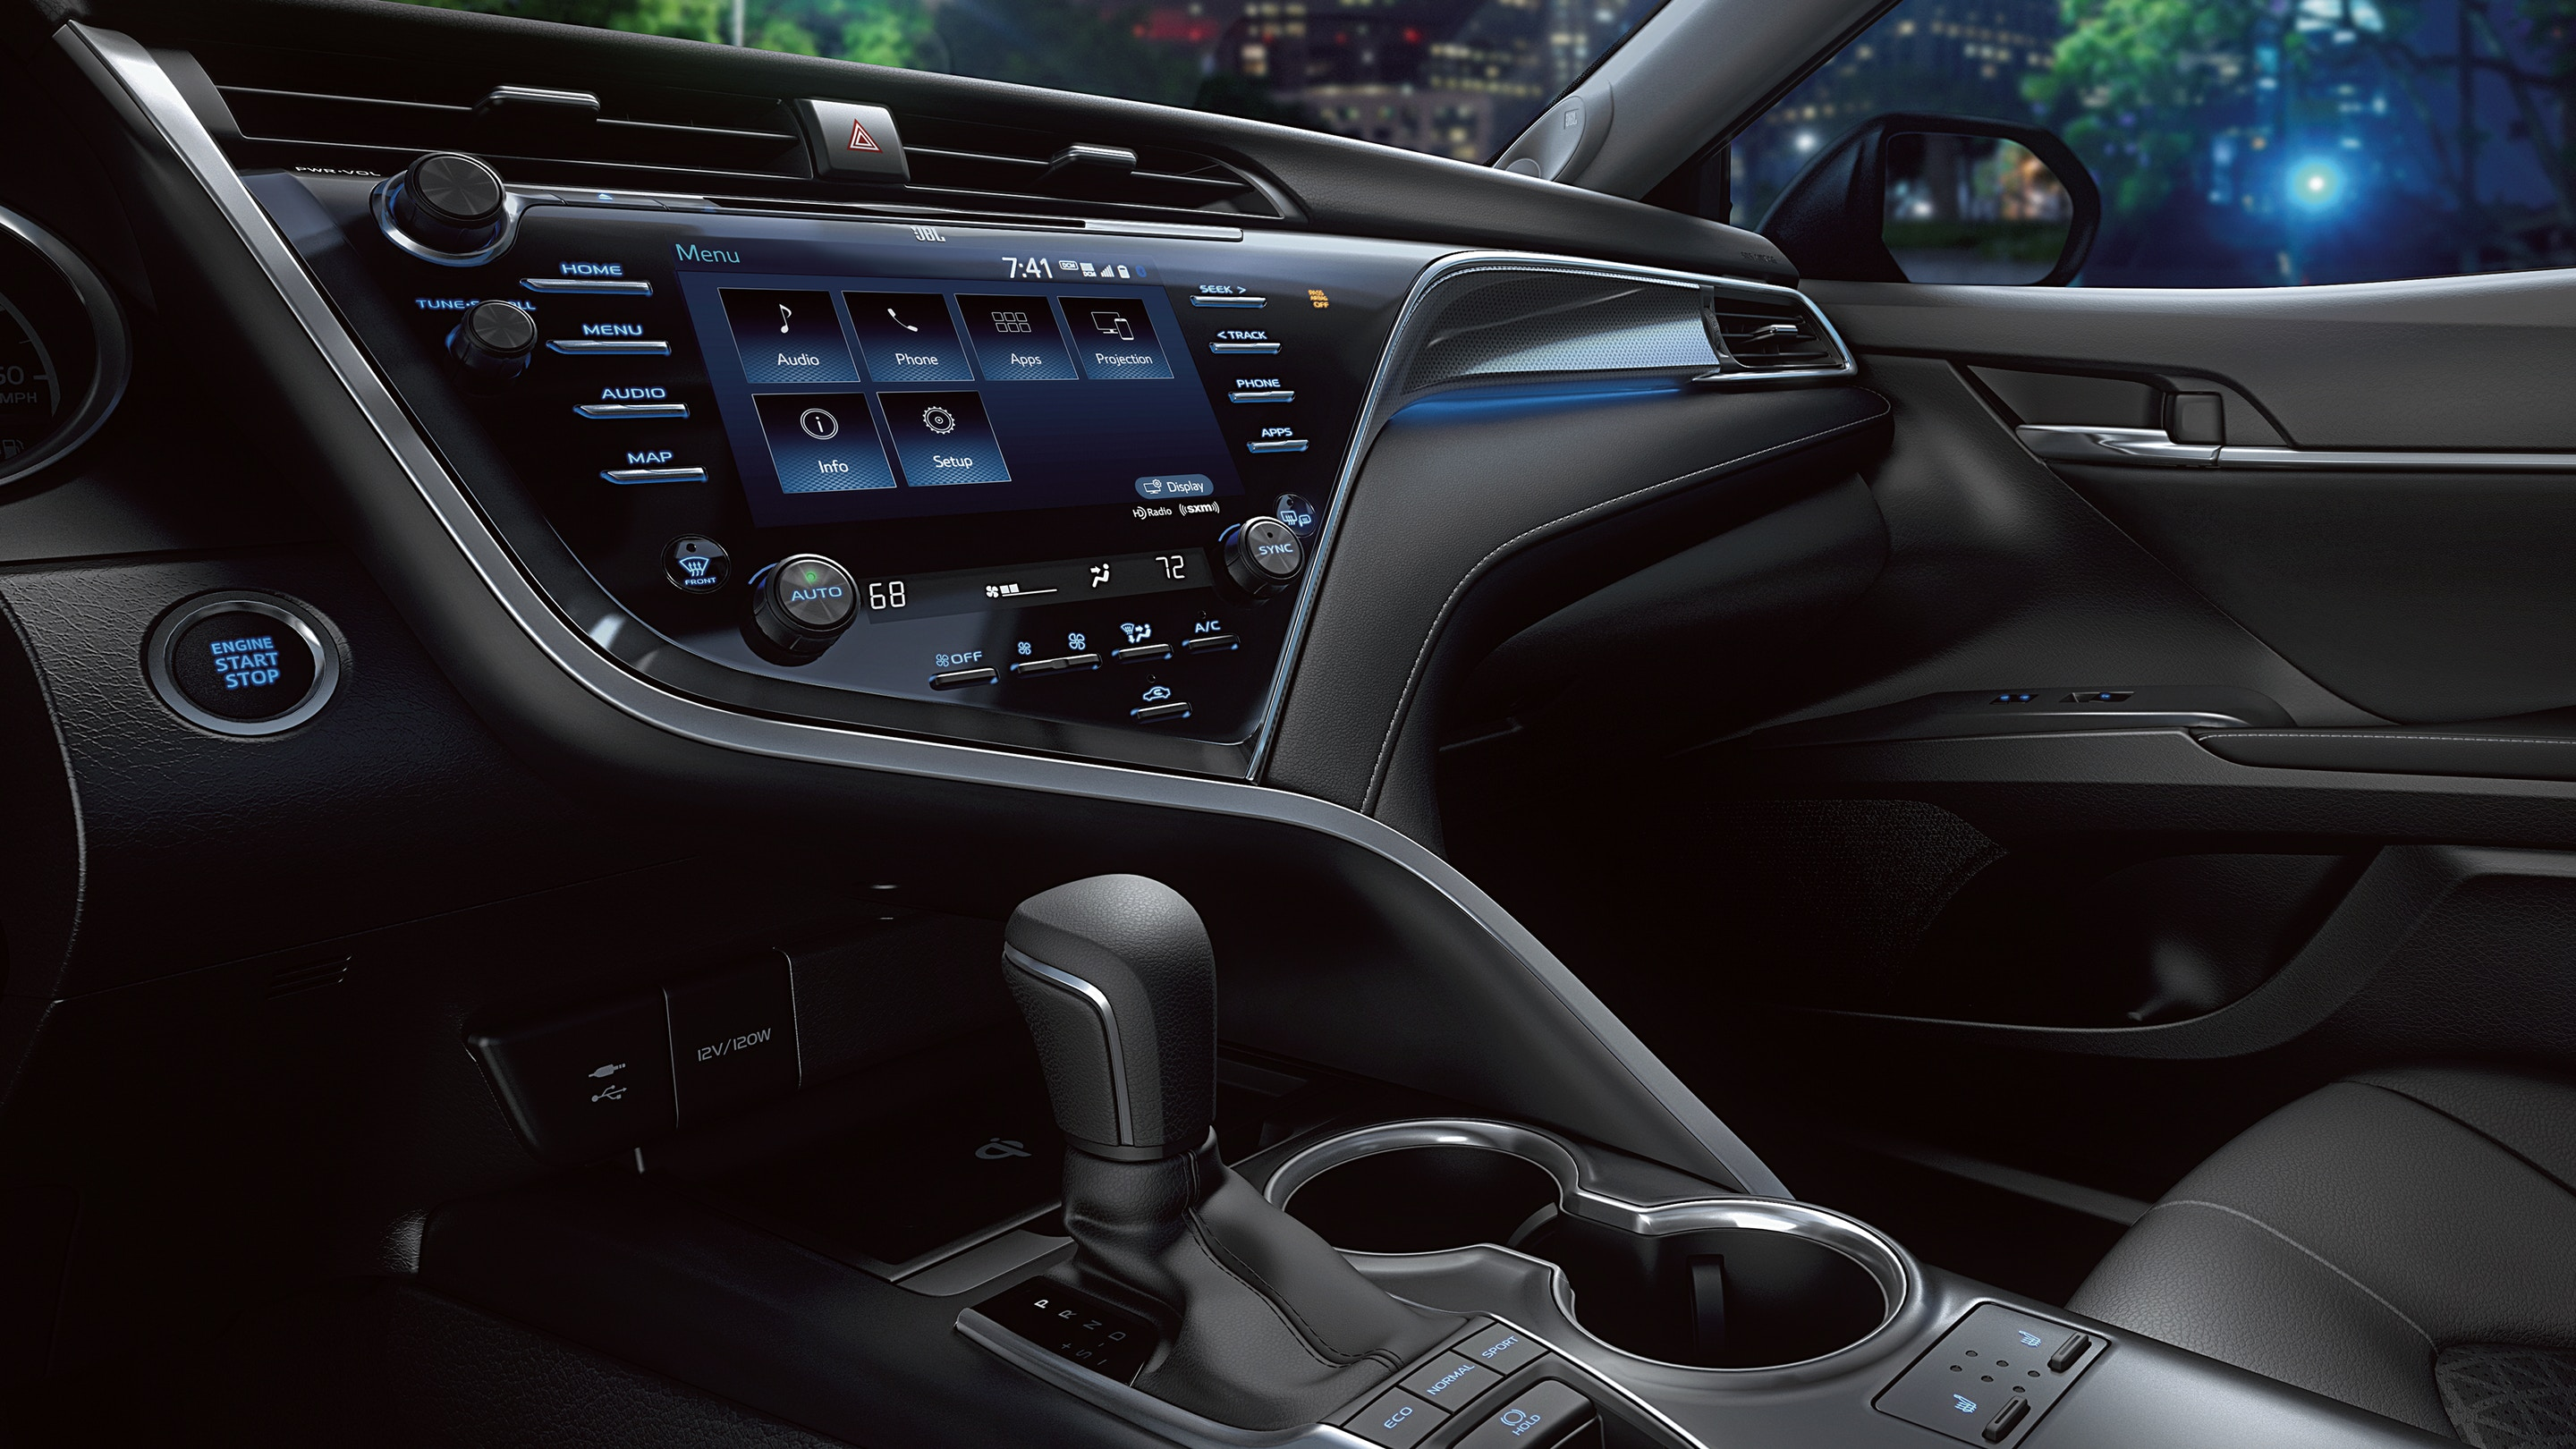 2019 Camry Center Console